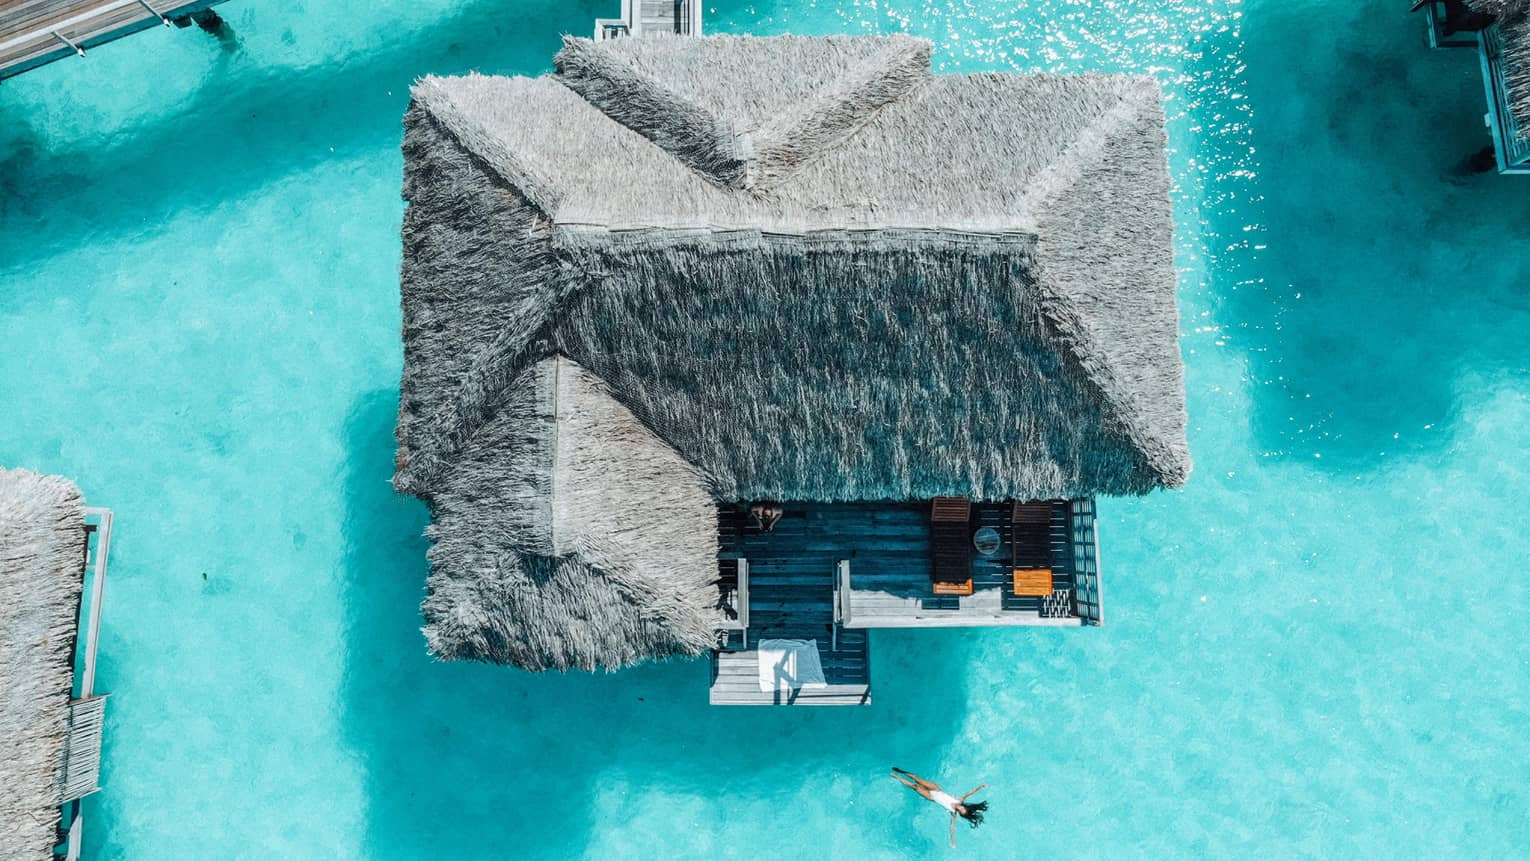 Aerial view of person swimming away from overwater bungalow in turquoise lagoon